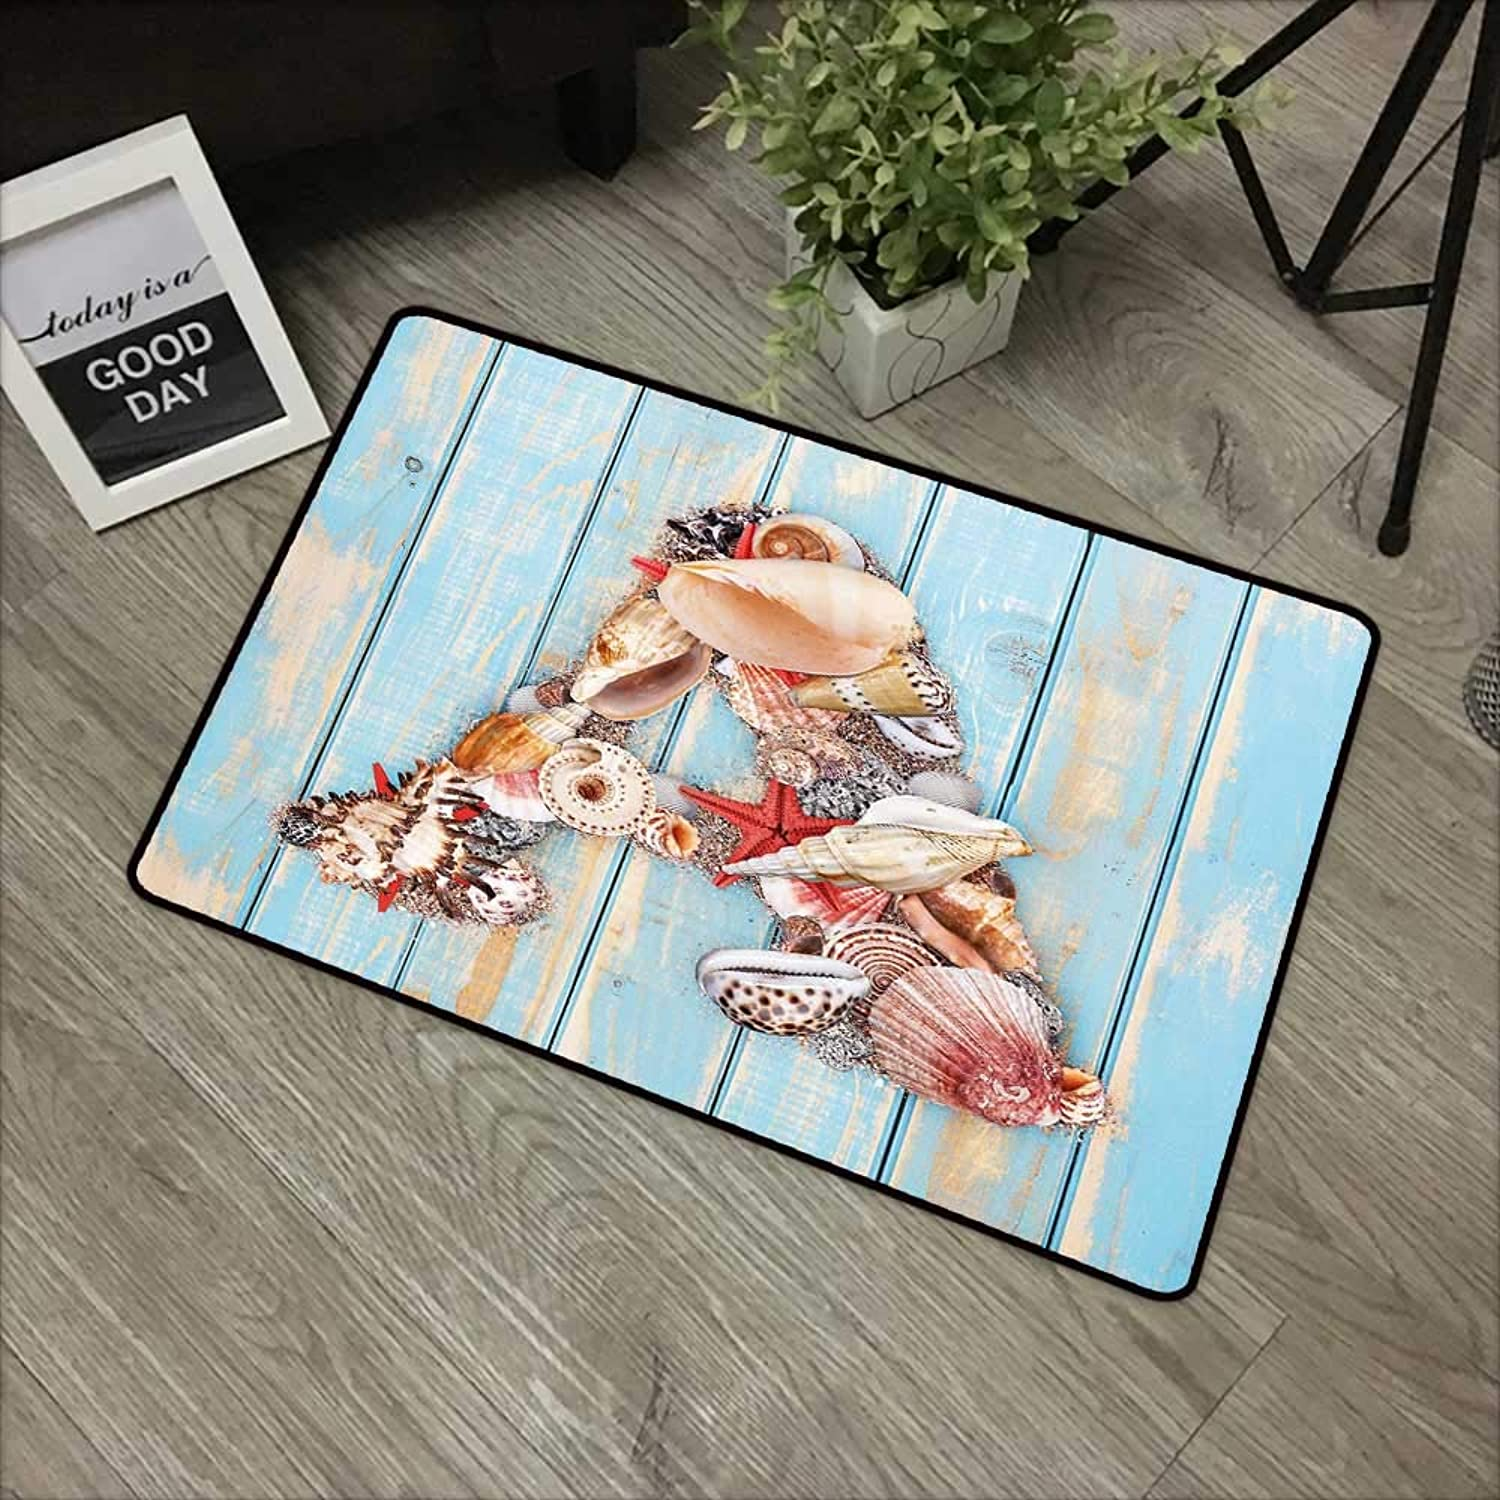 Bathroom Door mat W35 x L59 INCH Letter A,Letter A with Seashells on Pale Wooden Board Ingreenebrates Animal,Pale bluee Ivory Dark Coral with Non-Slip Backing Door Mat Carpet